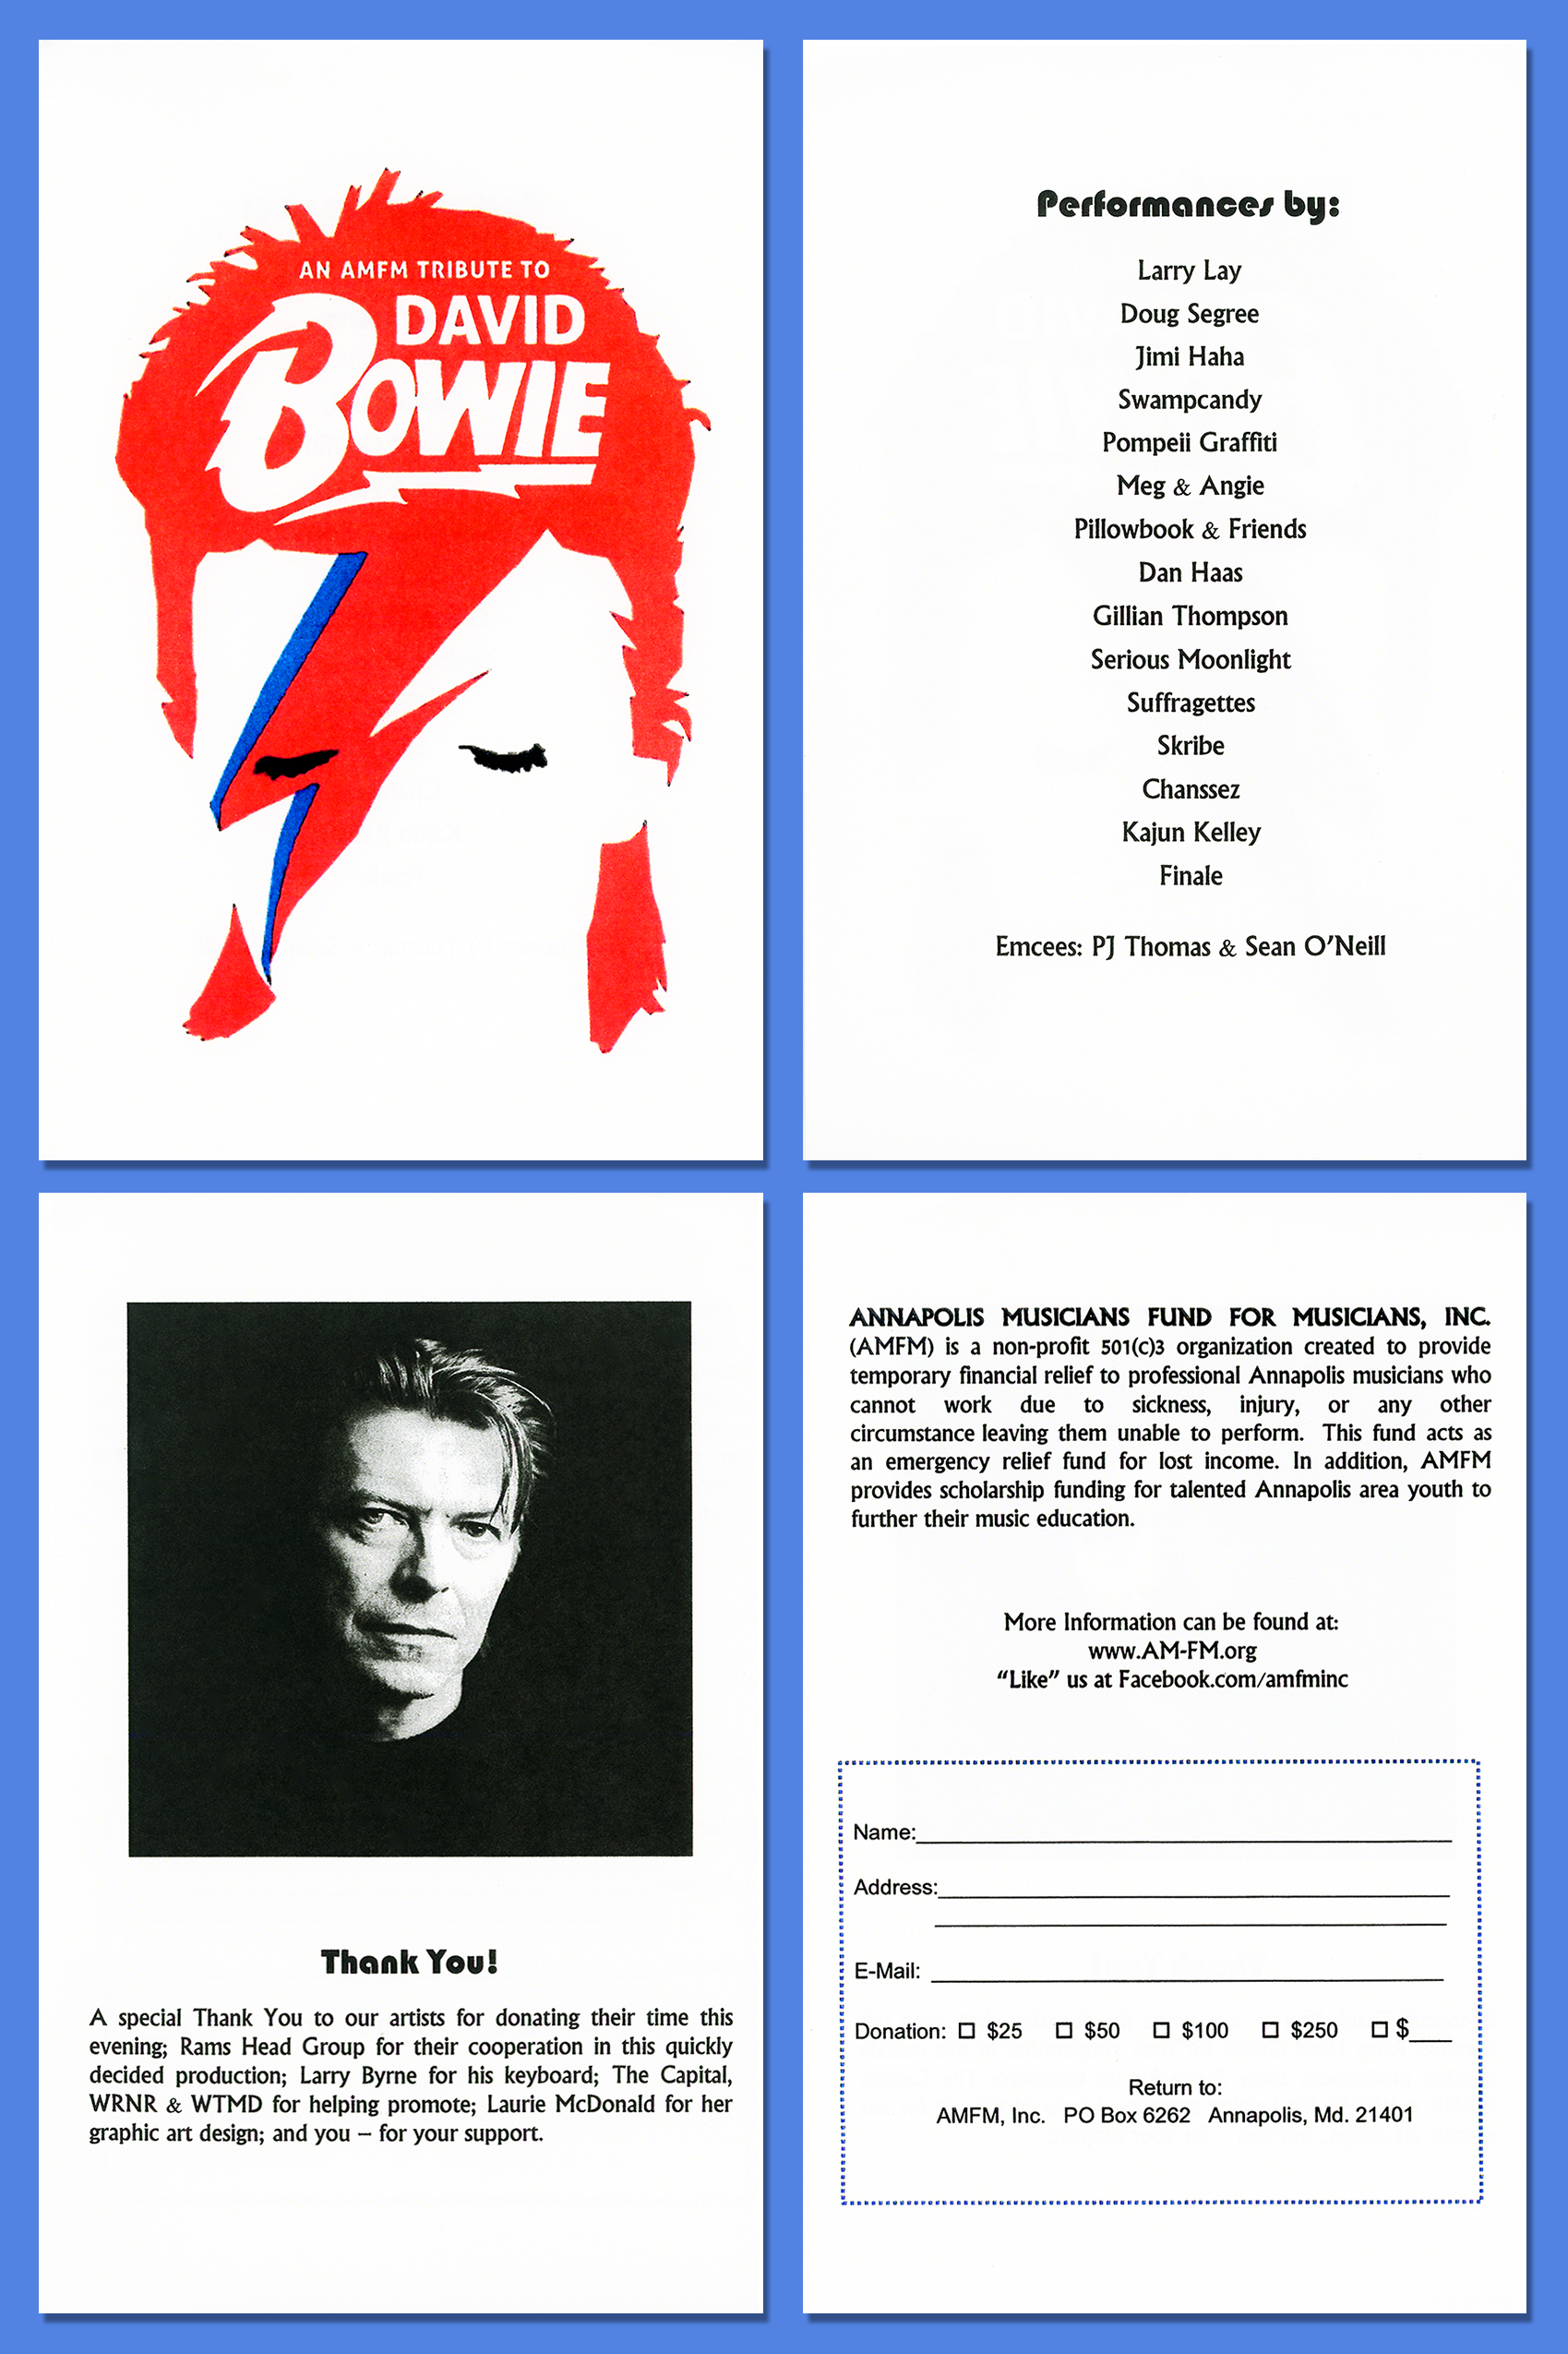 Daivd Bowie Tribute Show Program Layout